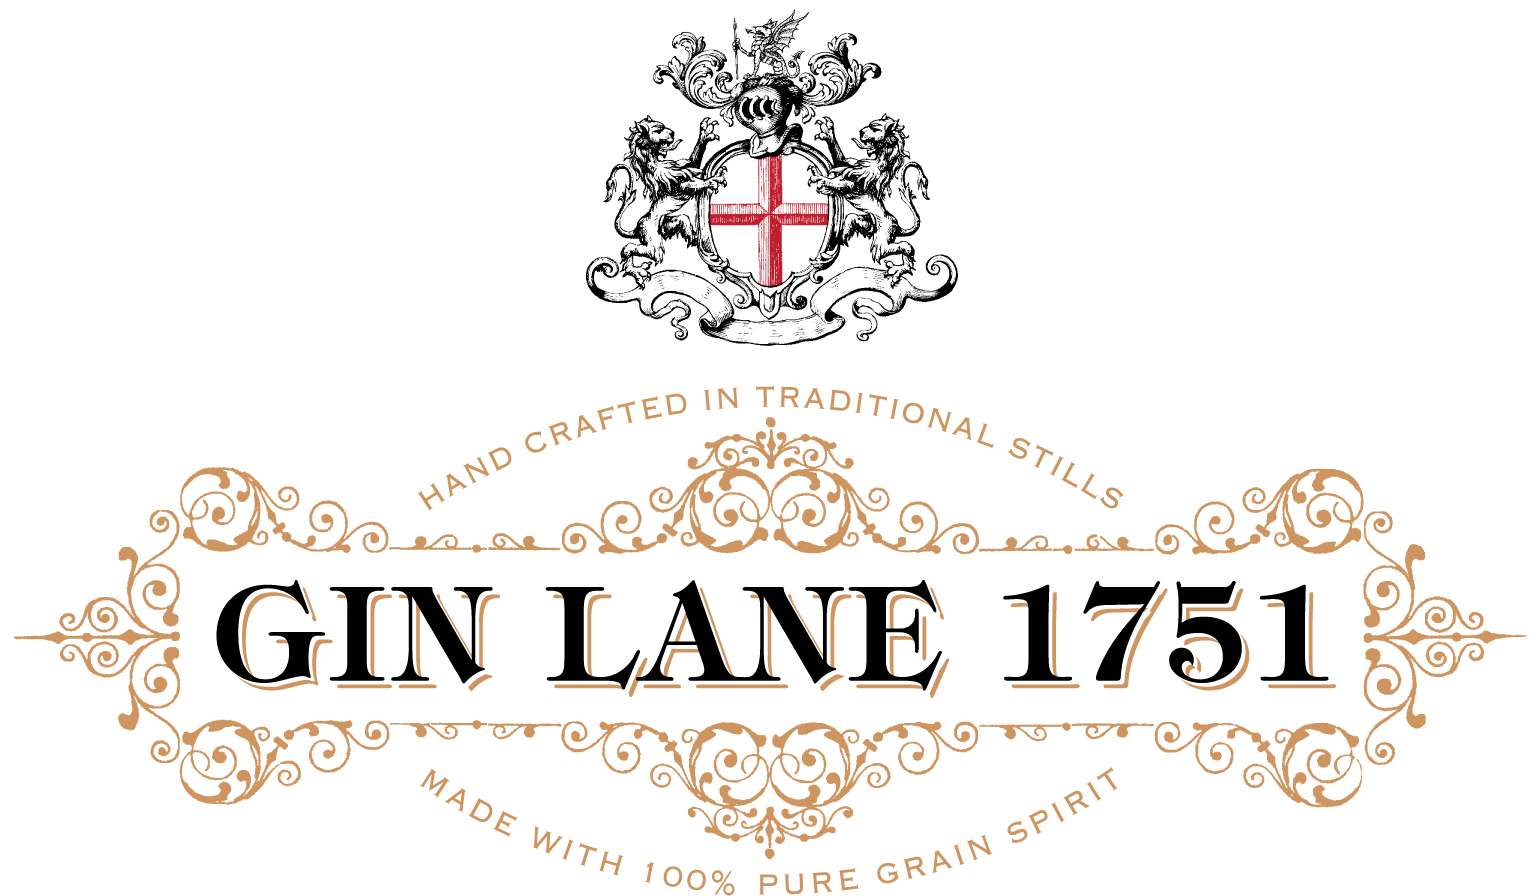 ginlane-logo-full-large.png